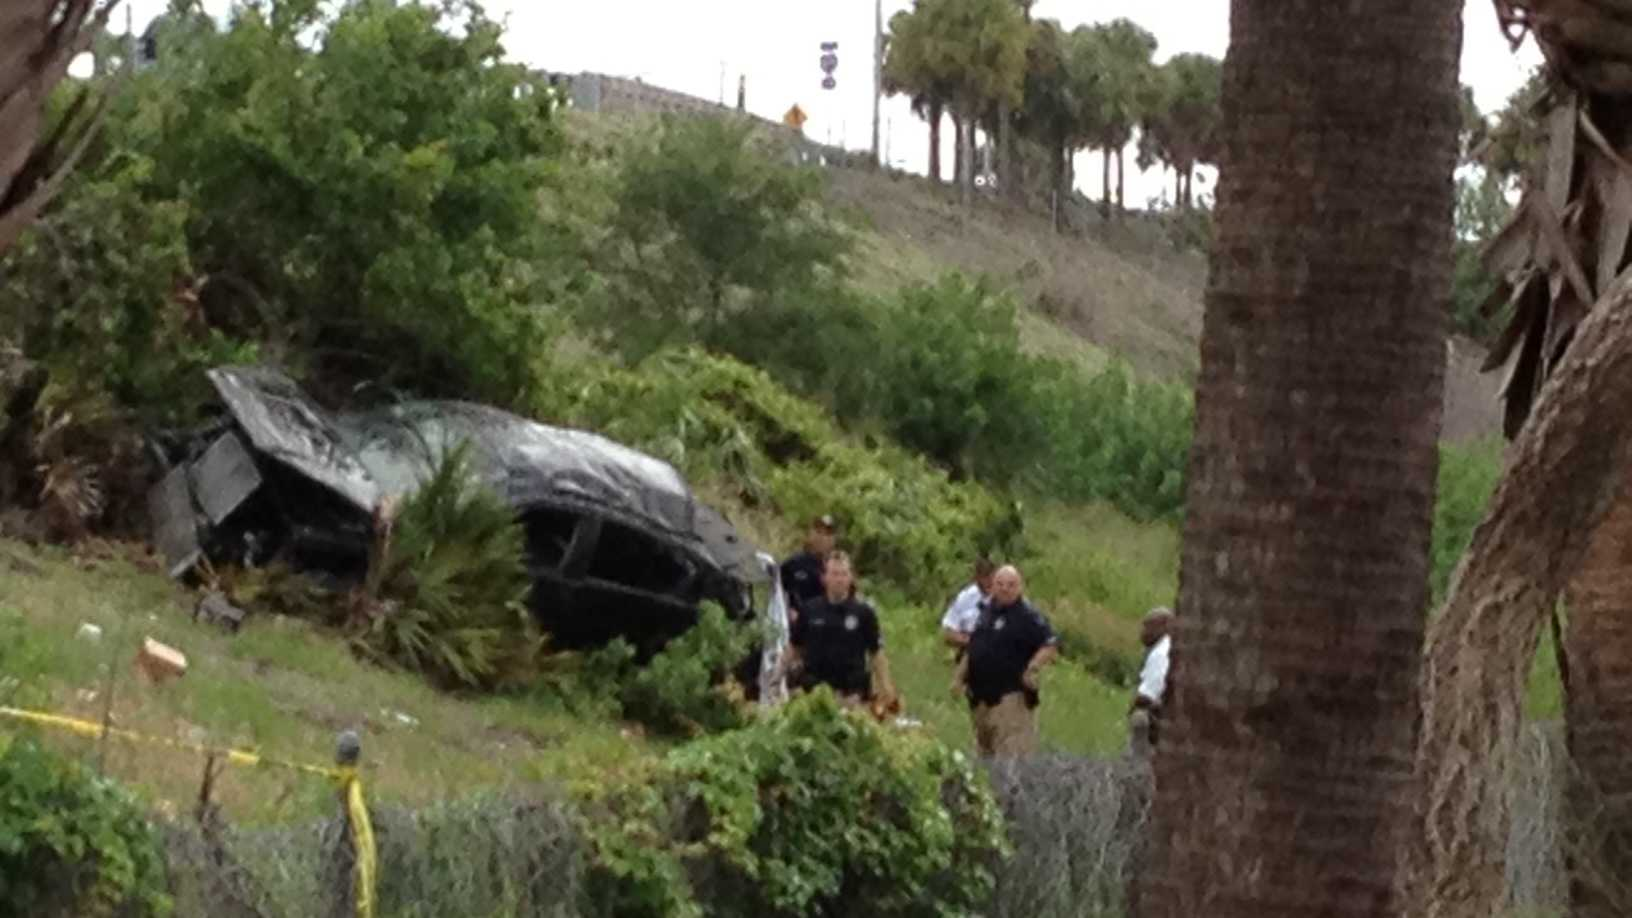 Police say the suspects in a Dunkin' Donuts robbery crashed this car during a chase. (Angela Rozier/WPBF)